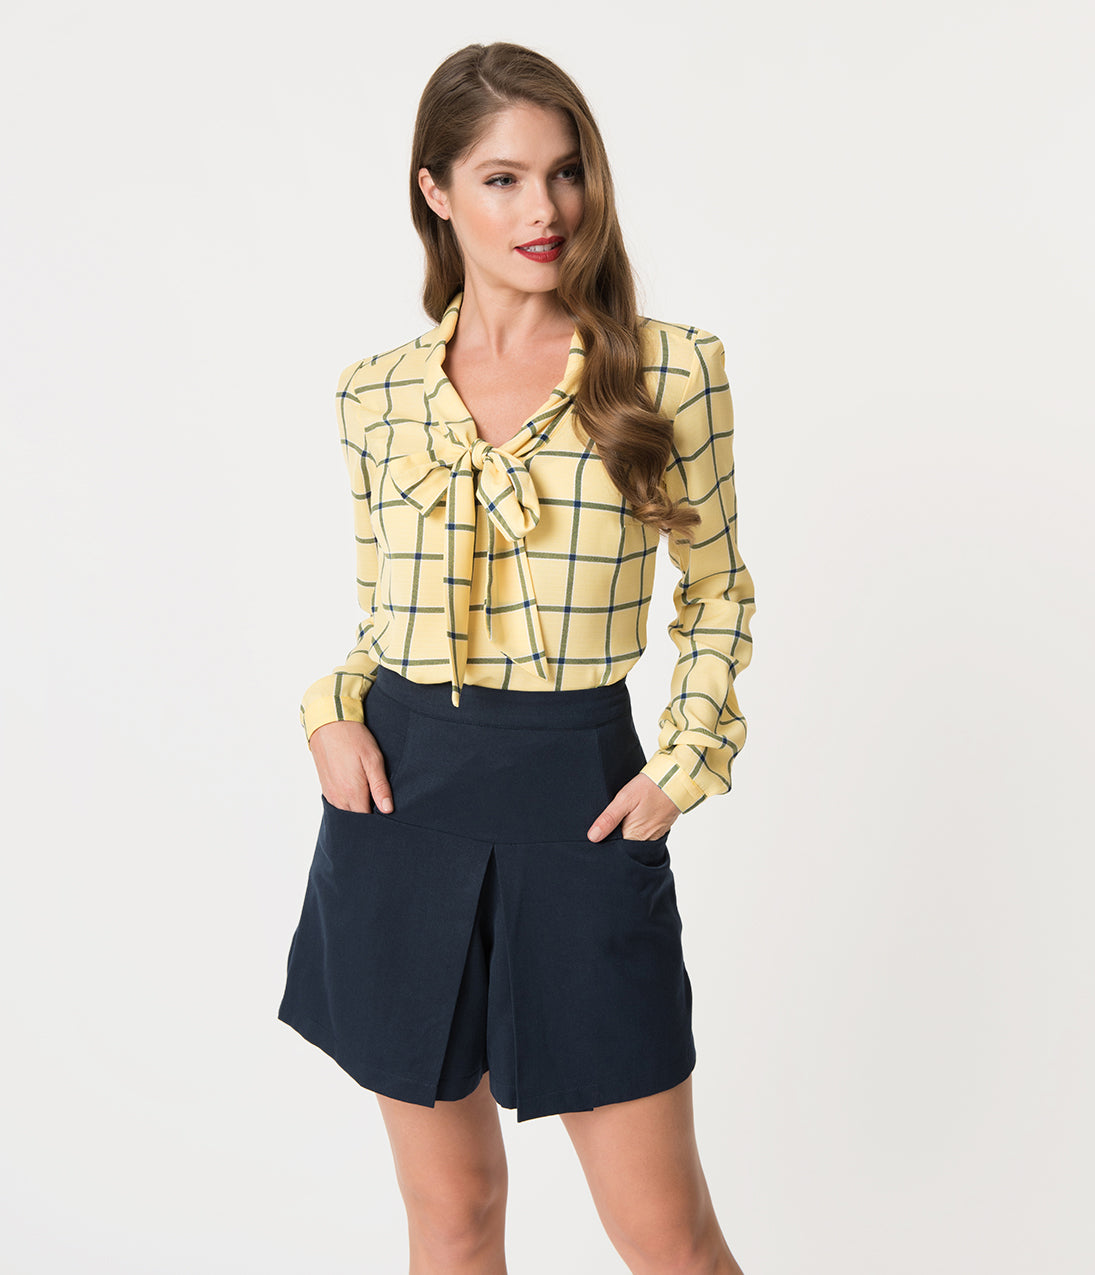 60s Shirts, T-shirt, Blouses | 70s Shirts, Tops, Vests Yellow  Navy Checkered Long Sleeve Woven Blouse $38.00 AT vintagedancer.com